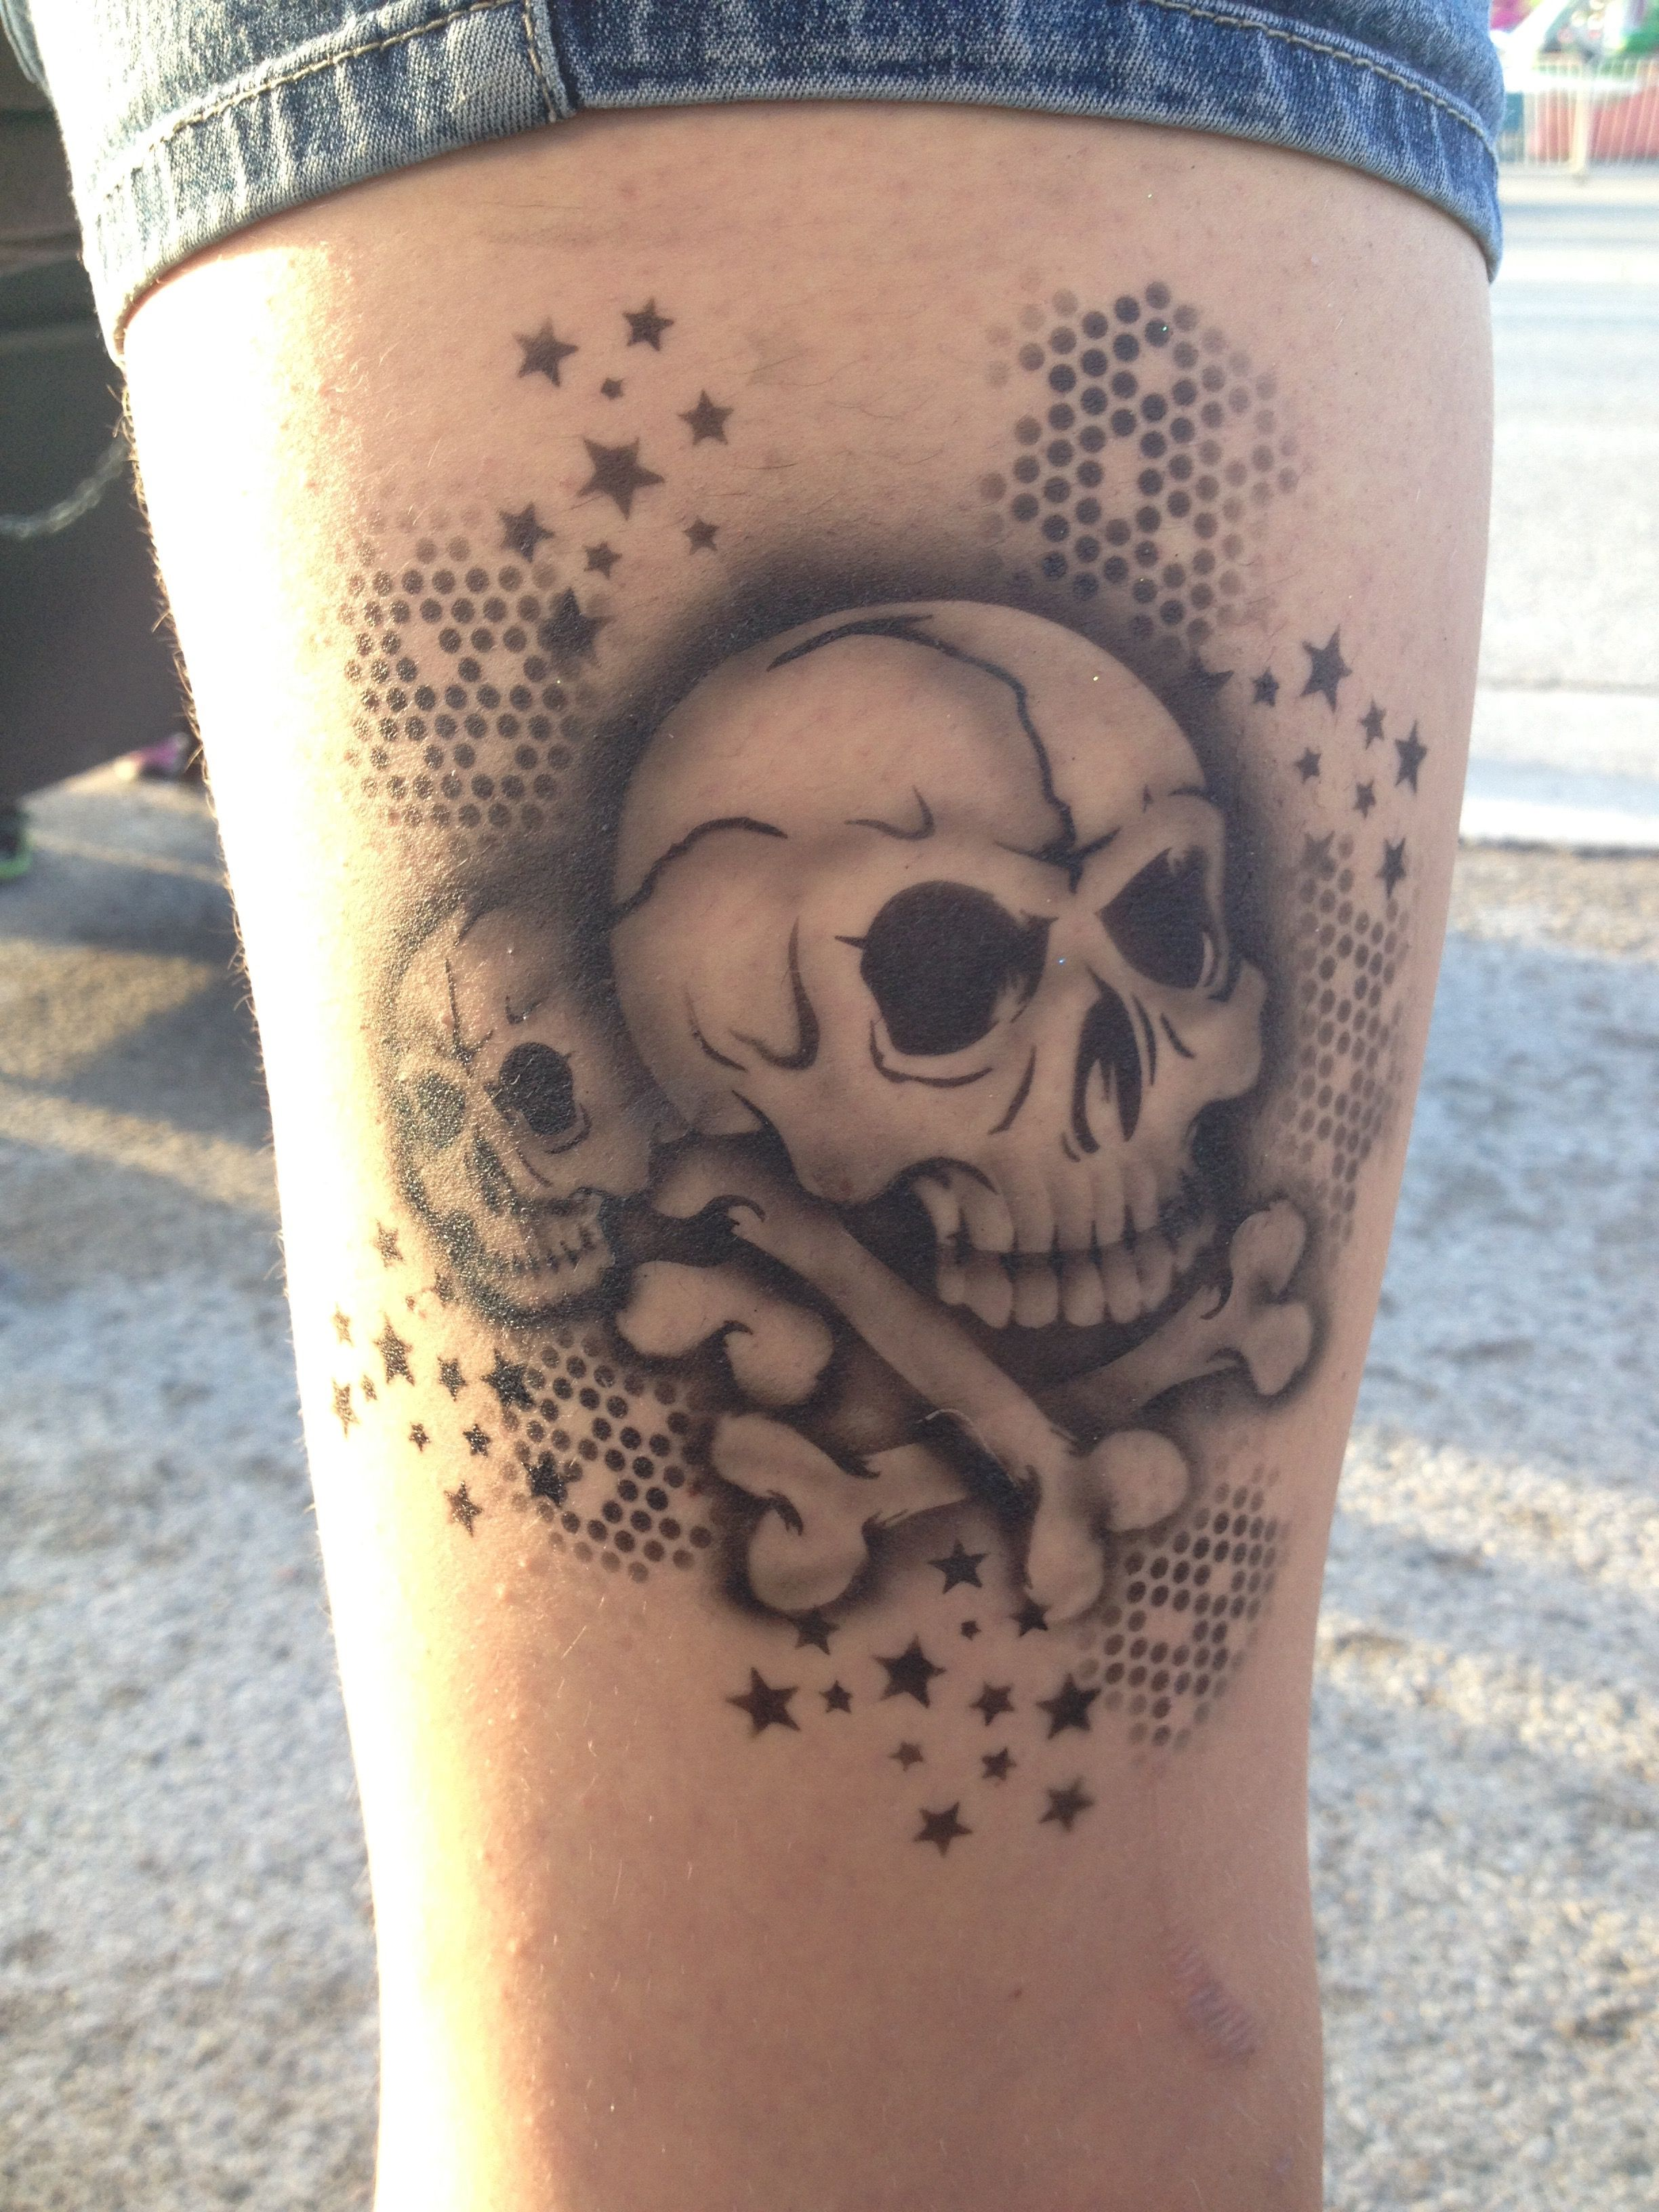 Airbrush Tattoo By Laura Newskinbodyart Using Tattoo Pro Ideas And Designs